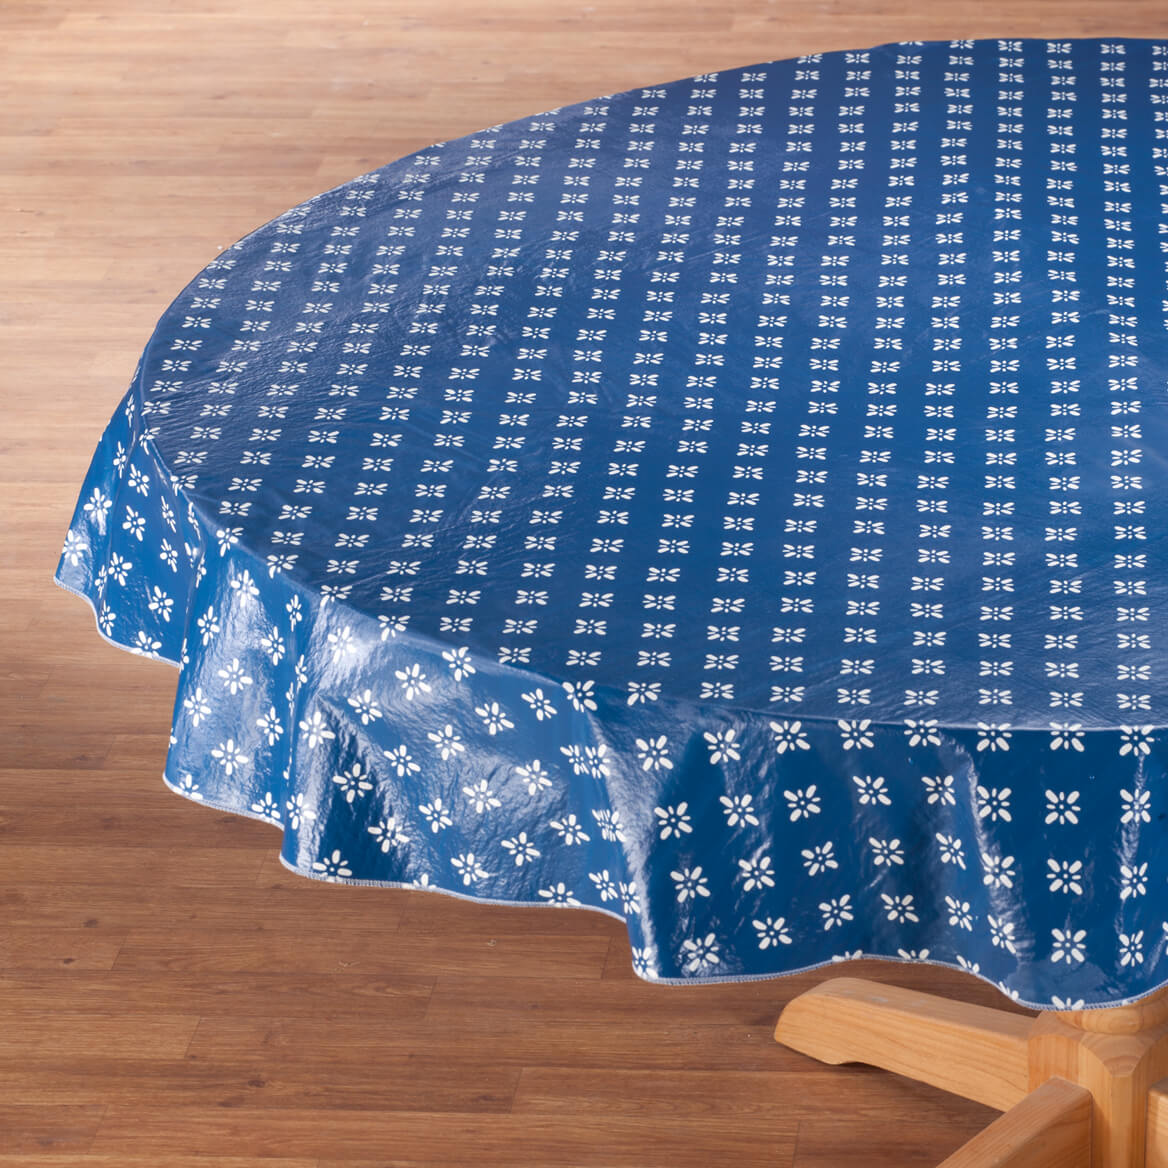 Heritage Vinyl Table Cover By Home-Style Kitchen™-355909